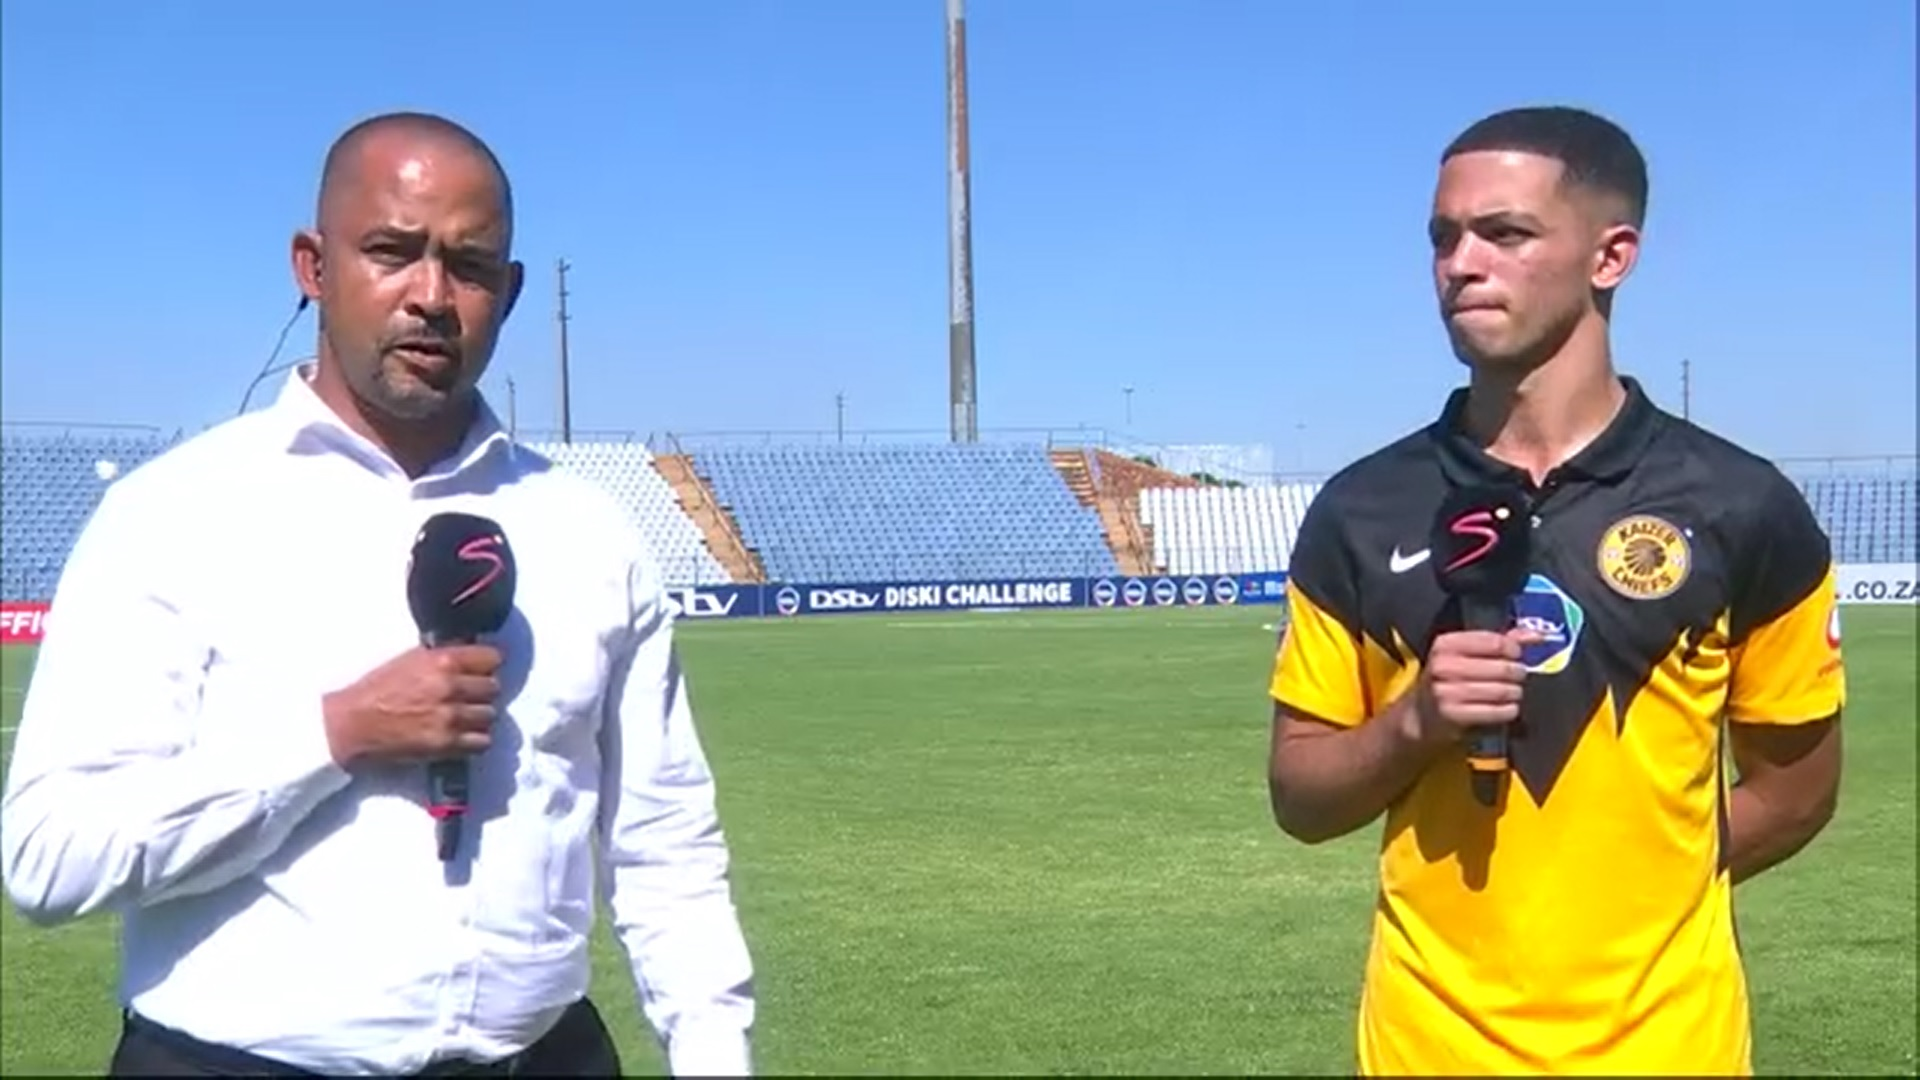 DStv Diski Challenge | Chiefs Reserves v Pirates Reserves | Post-match interview with Fabian McCarthy and son Aden